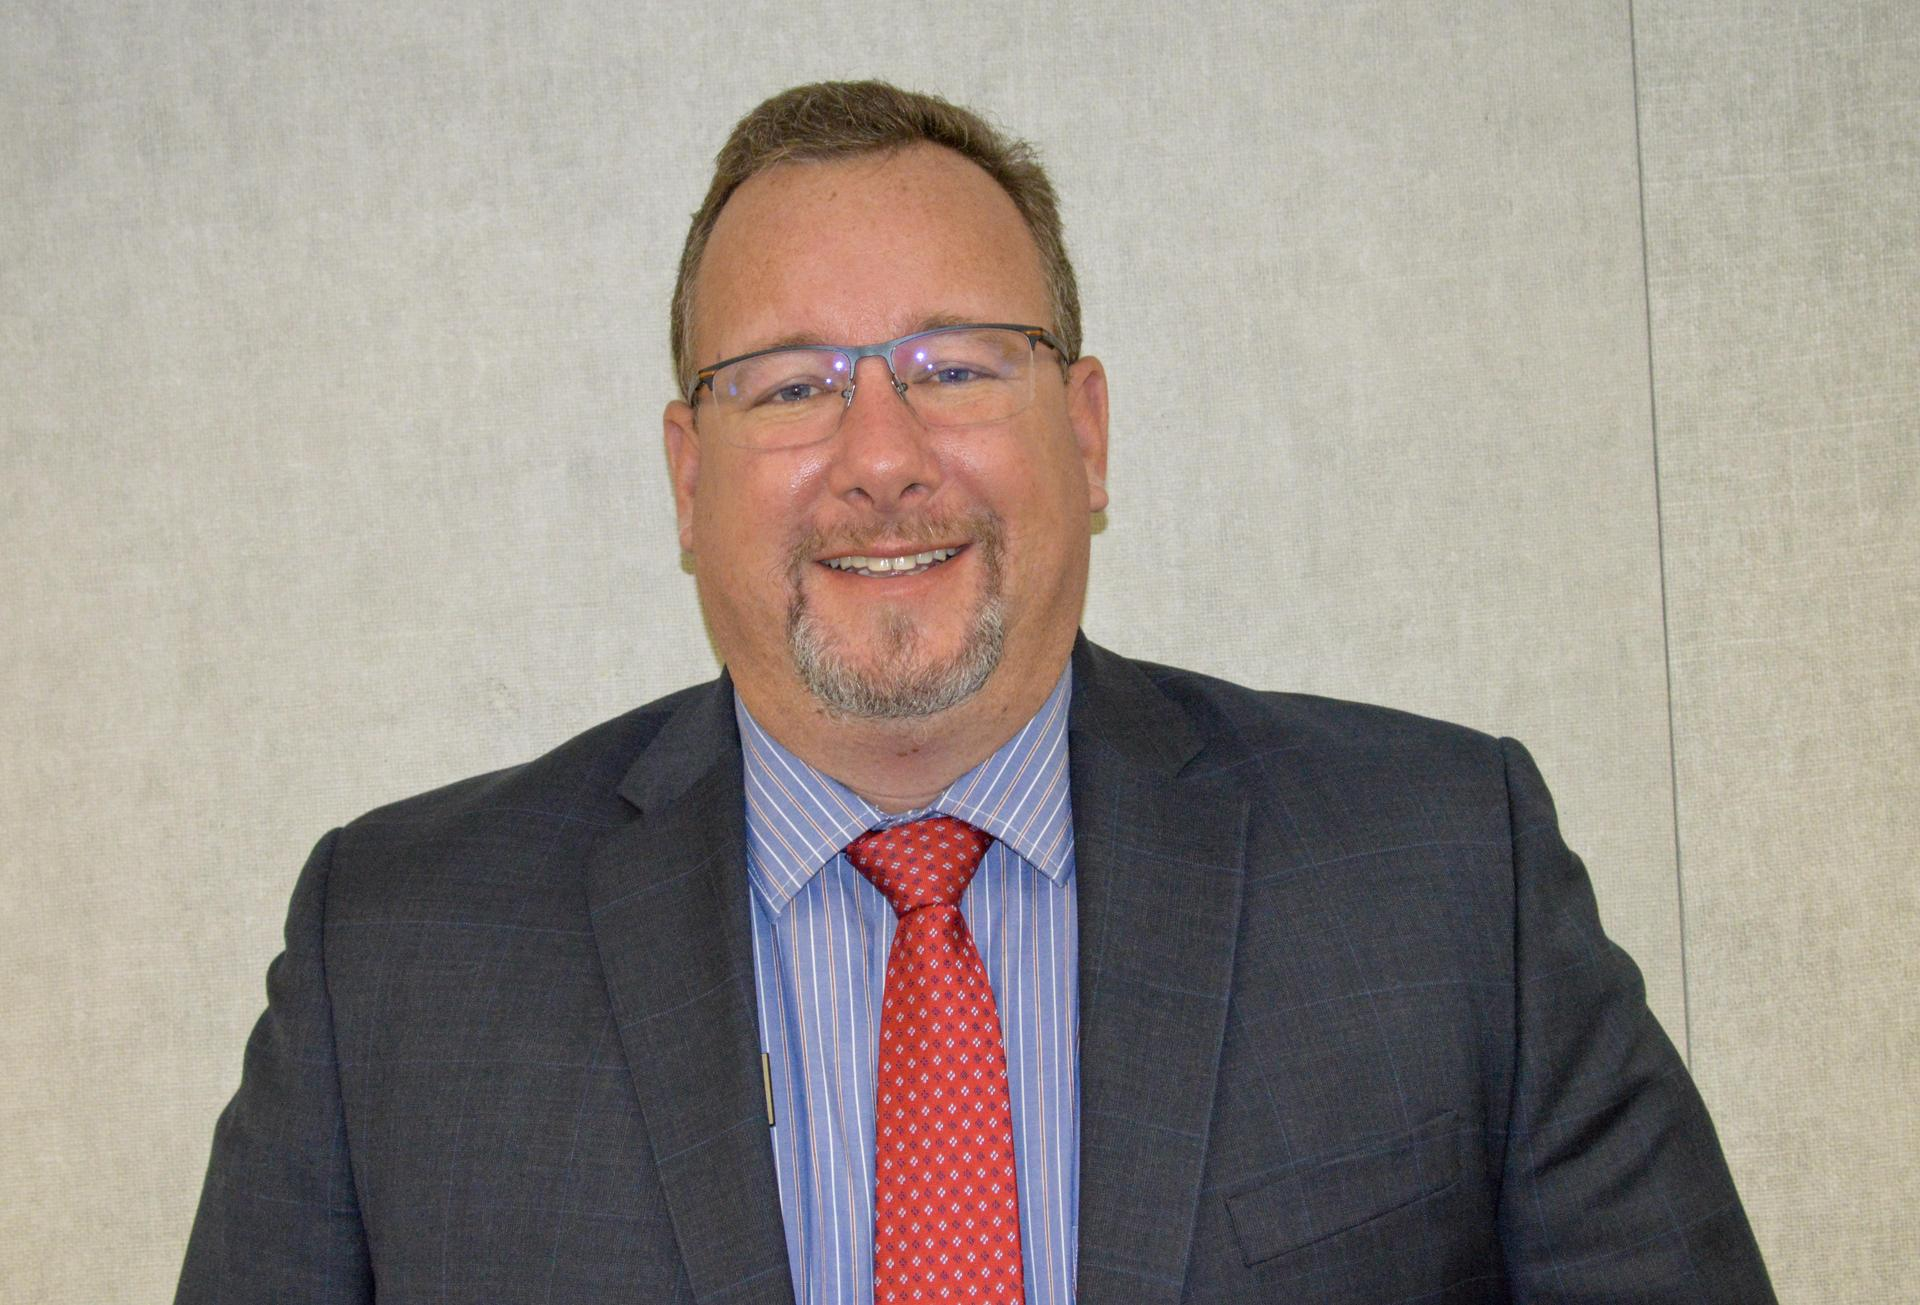 Scott Martin, Assistant Superintendent of Business and Administrative Services